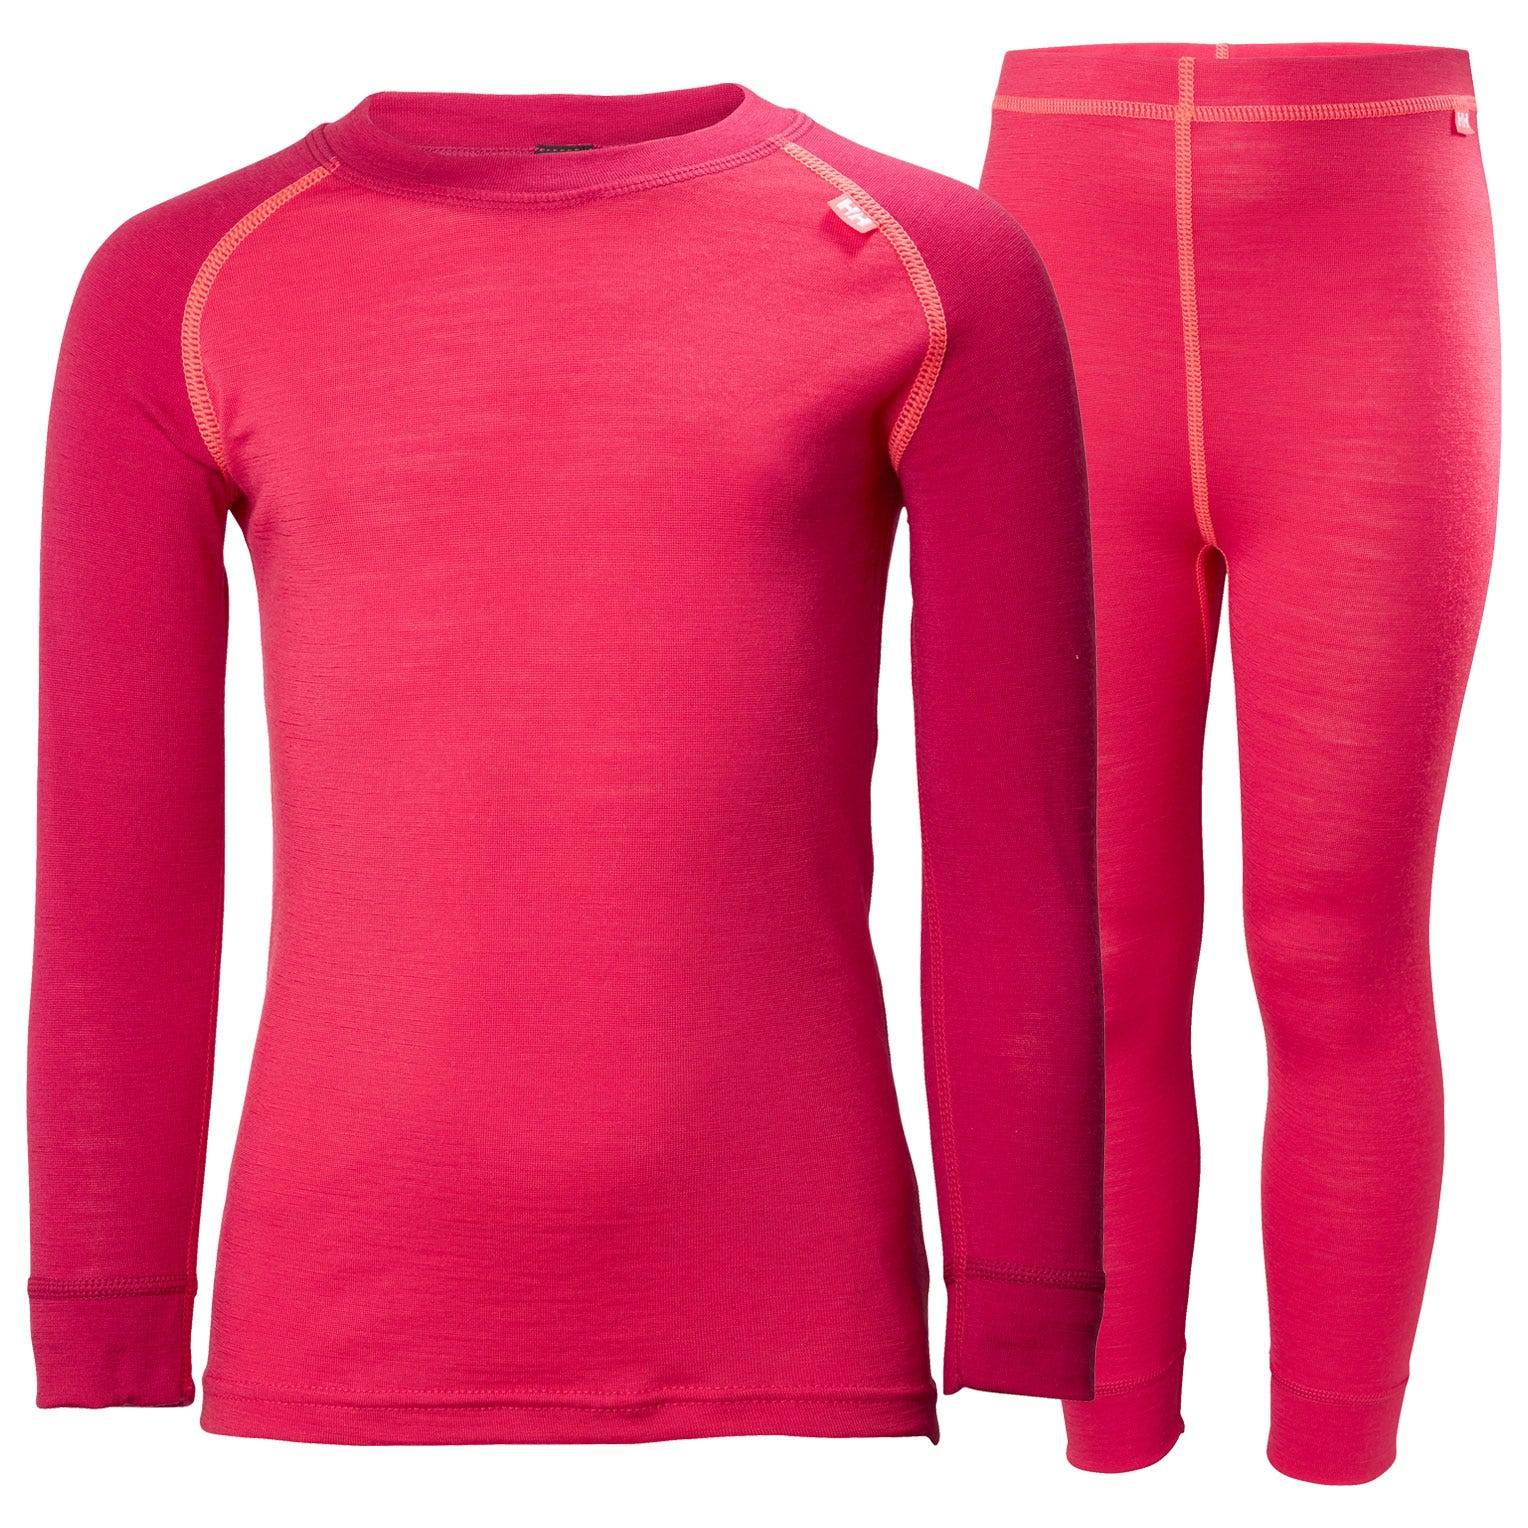 Helly Hansen Kids Merino Mid Set Baselayer Pink 122/7